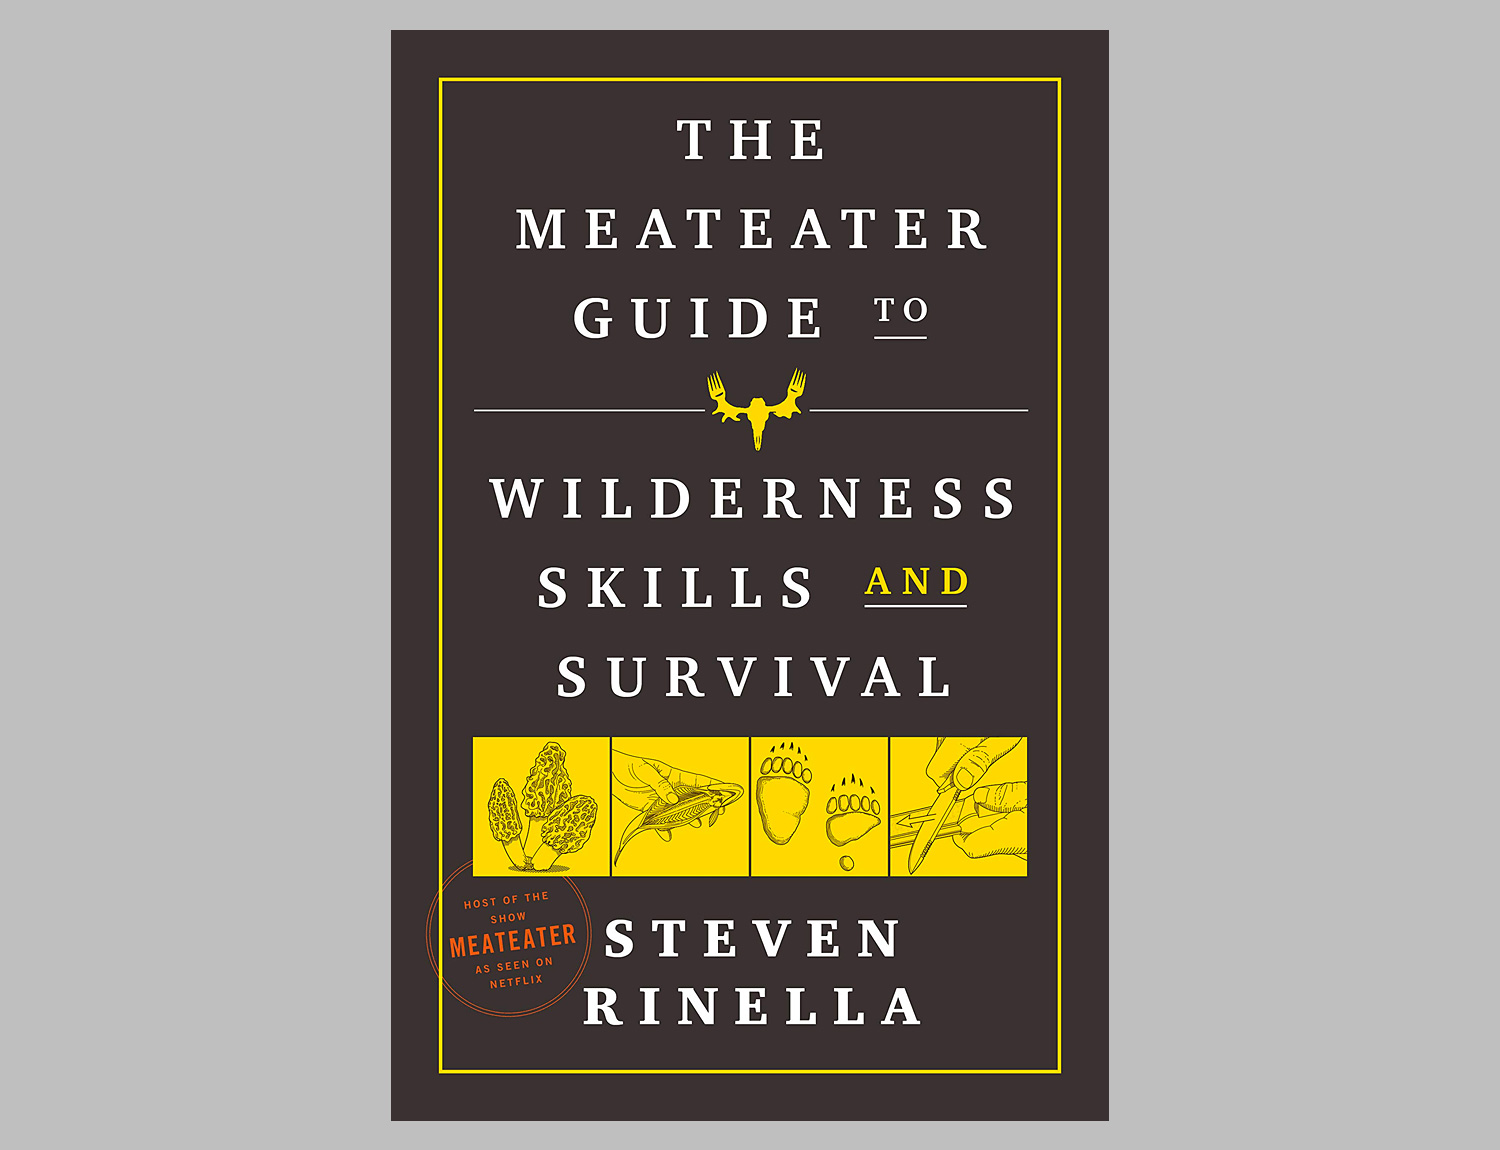 The MeatEater Guide to Wilderness Skills and Survival at werd.com